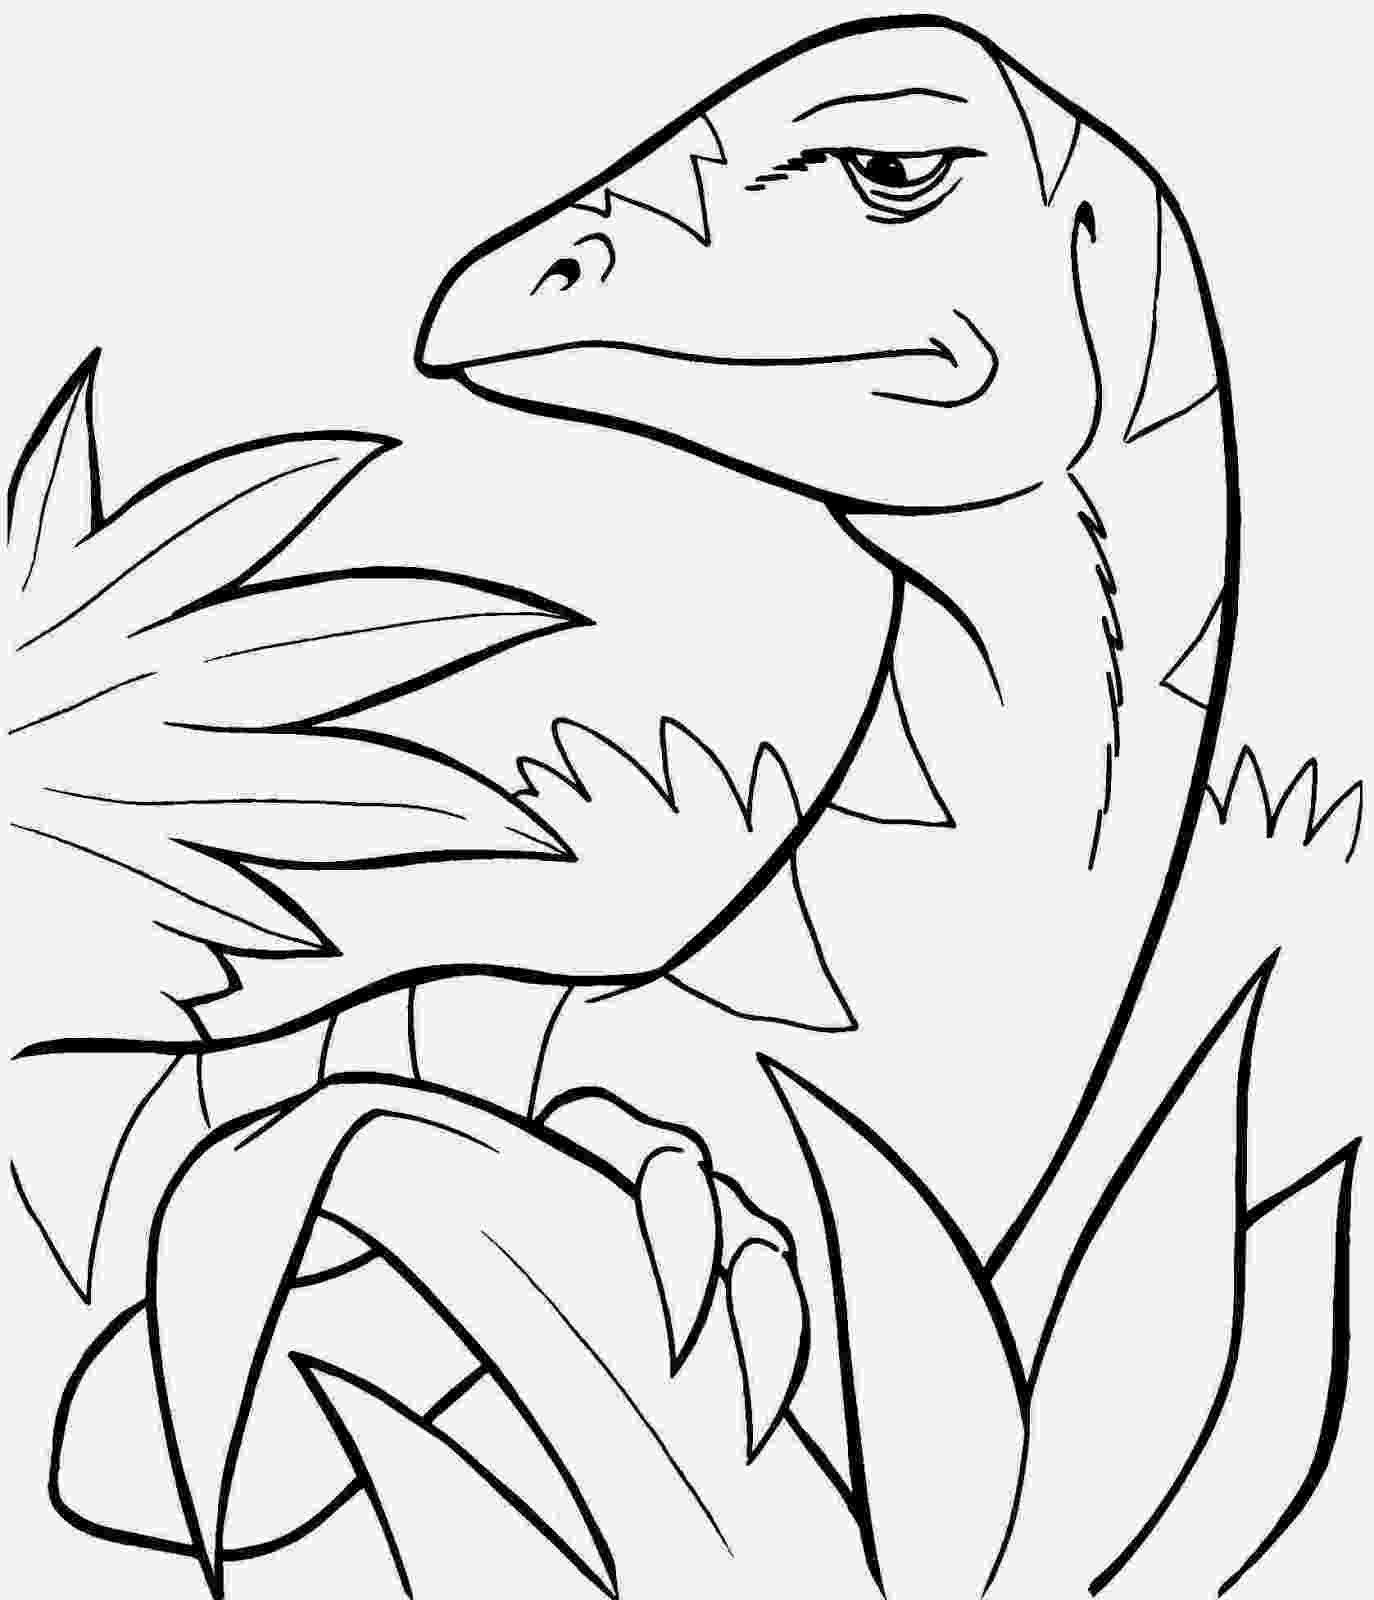 print dinosaur pictures coloring pages dinosaur free printable coloring pages pictures dinosaur print 1 1